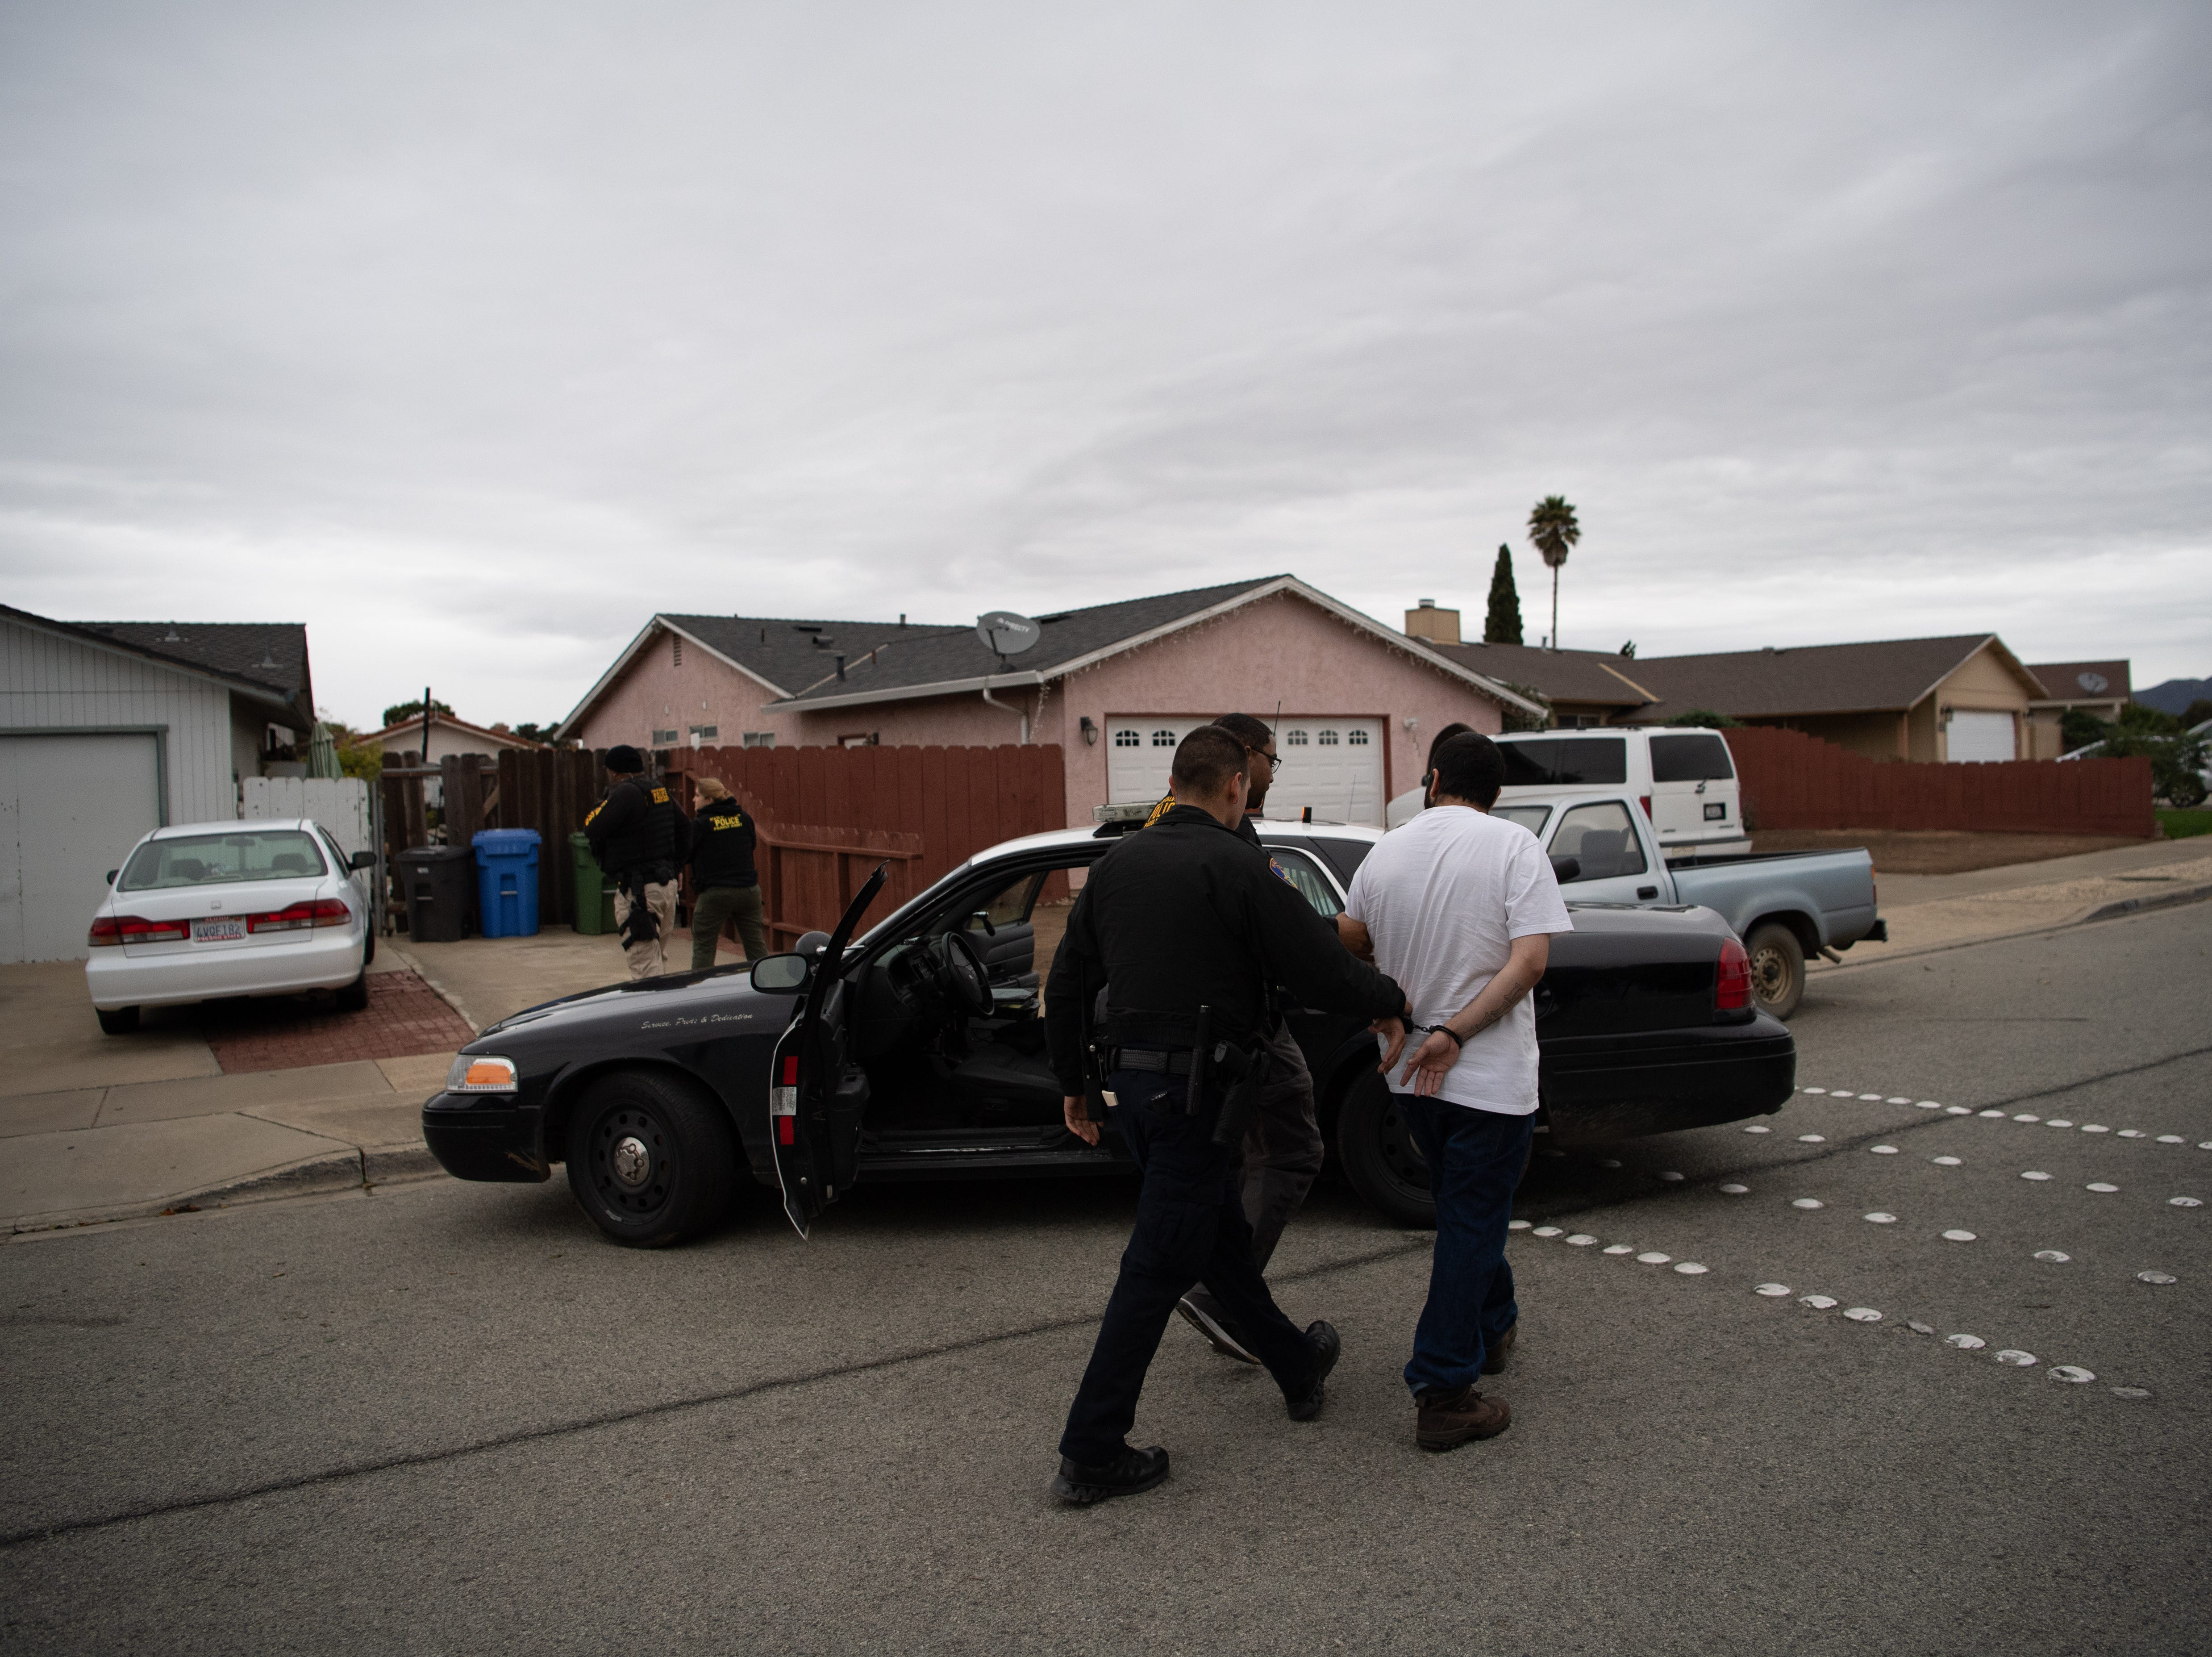 """A large-scale, four-month-long gang enforcement operation named """"Operation Triple Beam"""" concluded Feb. 15 resulting in arrest of 197 fugitives, 94 of whom were gang members or associates. The U.S. Marshals Pacific Southwest Regional Fugitive Task Force led operation involved multiple federal, state and local law enforcement agencies concentrating their efforts and focus on known street gangs in Monterey County, particularly within the City of Salinas. During Operation Triple Beam (OTB), which was conducted from October 2018 to February 2019, Salinas Police noted significant reduction in violent crime reports in comparison to the prior year.  Specifically noted were an 87.5 percent decrease in homicide incidents, a 46.6 percent decrease in drive-by-shootings, a 31.7 percent decrease in shootings overall, and a 66.6 percent decrease in armed robberies. Since 2010, the U.S. Marshals Service has led more than 60 counter-gang operations which have yielded over 8,000 arrests and the seizure of more than 1,800 illegal firearms."""